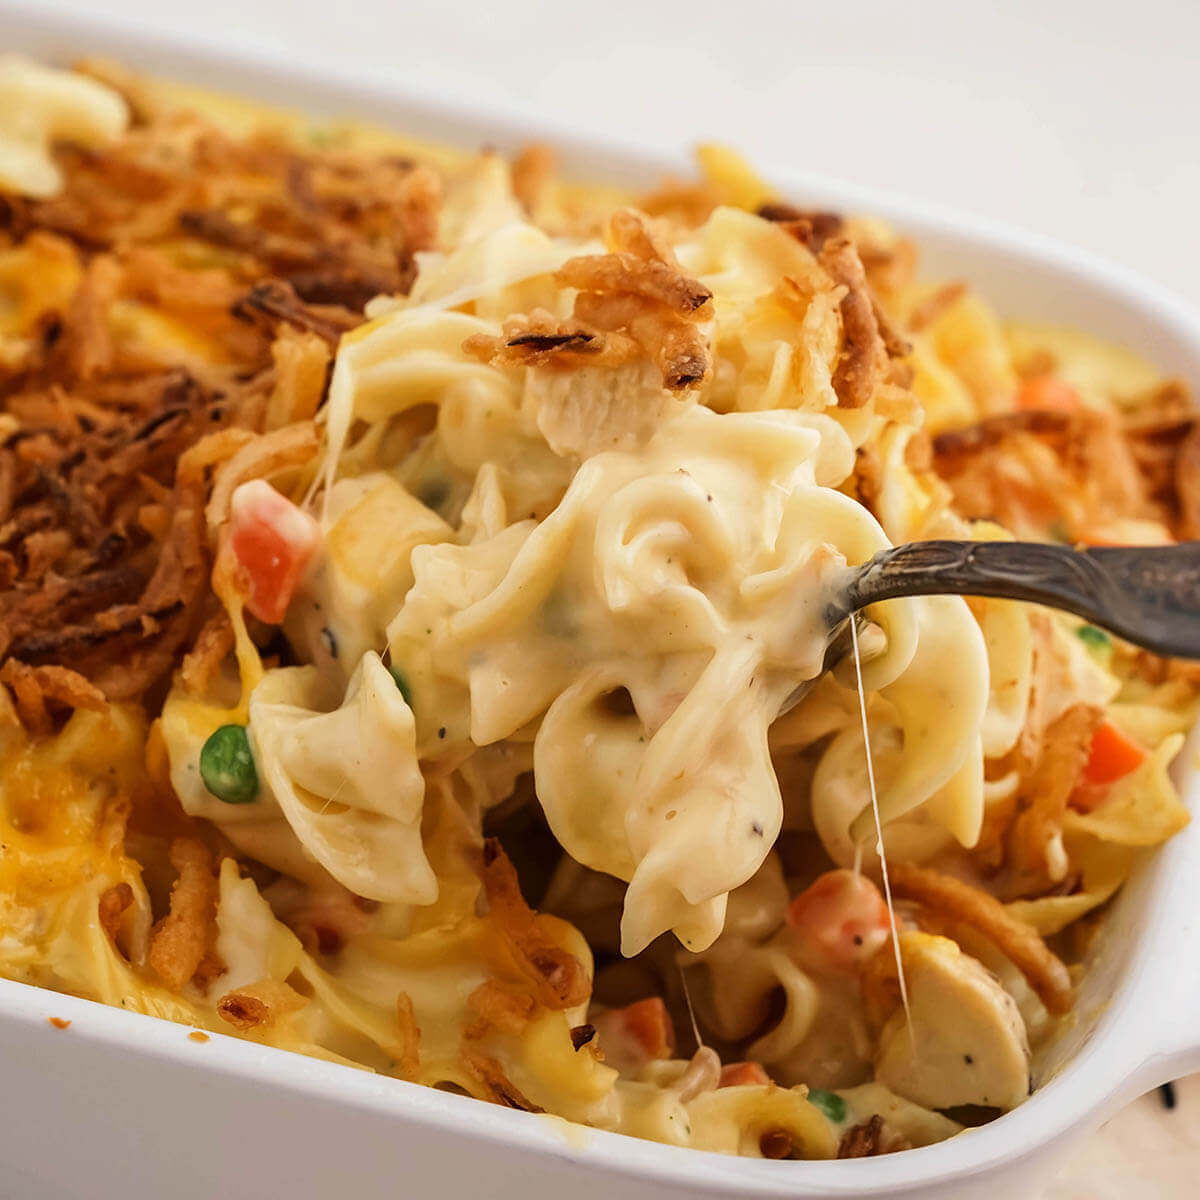 Chicken Noodle Casserole in pan with spoon scooping a serving.